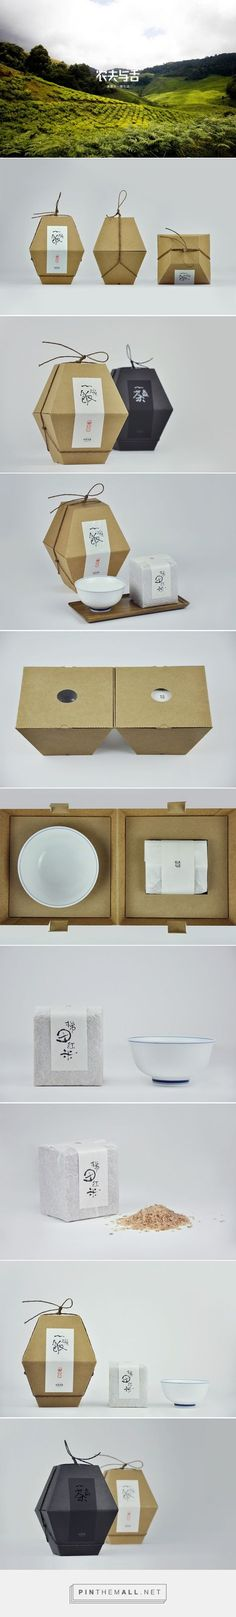 A Bowl of Rice packaging design by Shanghai Version (China) - http://www.packagingoftheworld.com/2016/05/a-bowl-of-rice.html